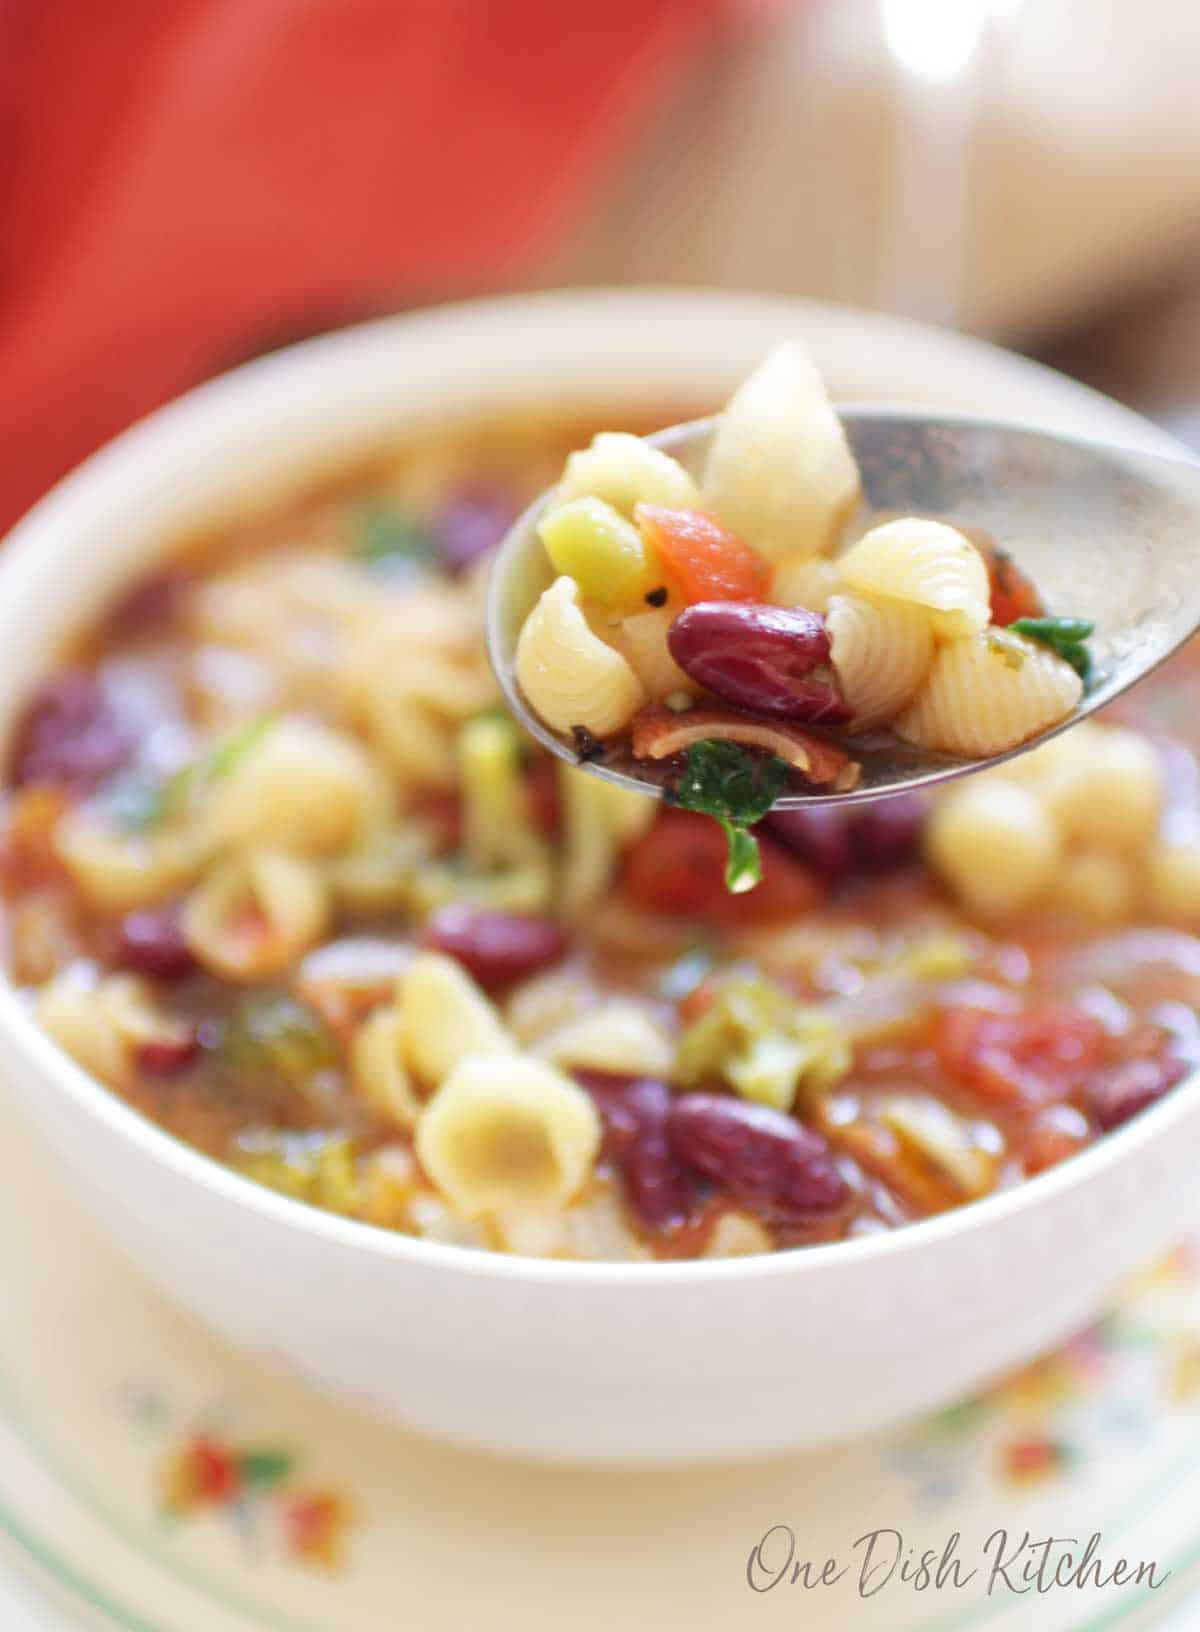 A spoonful of minestrone soup filled with noodles, beans, carrots, and other vegetables